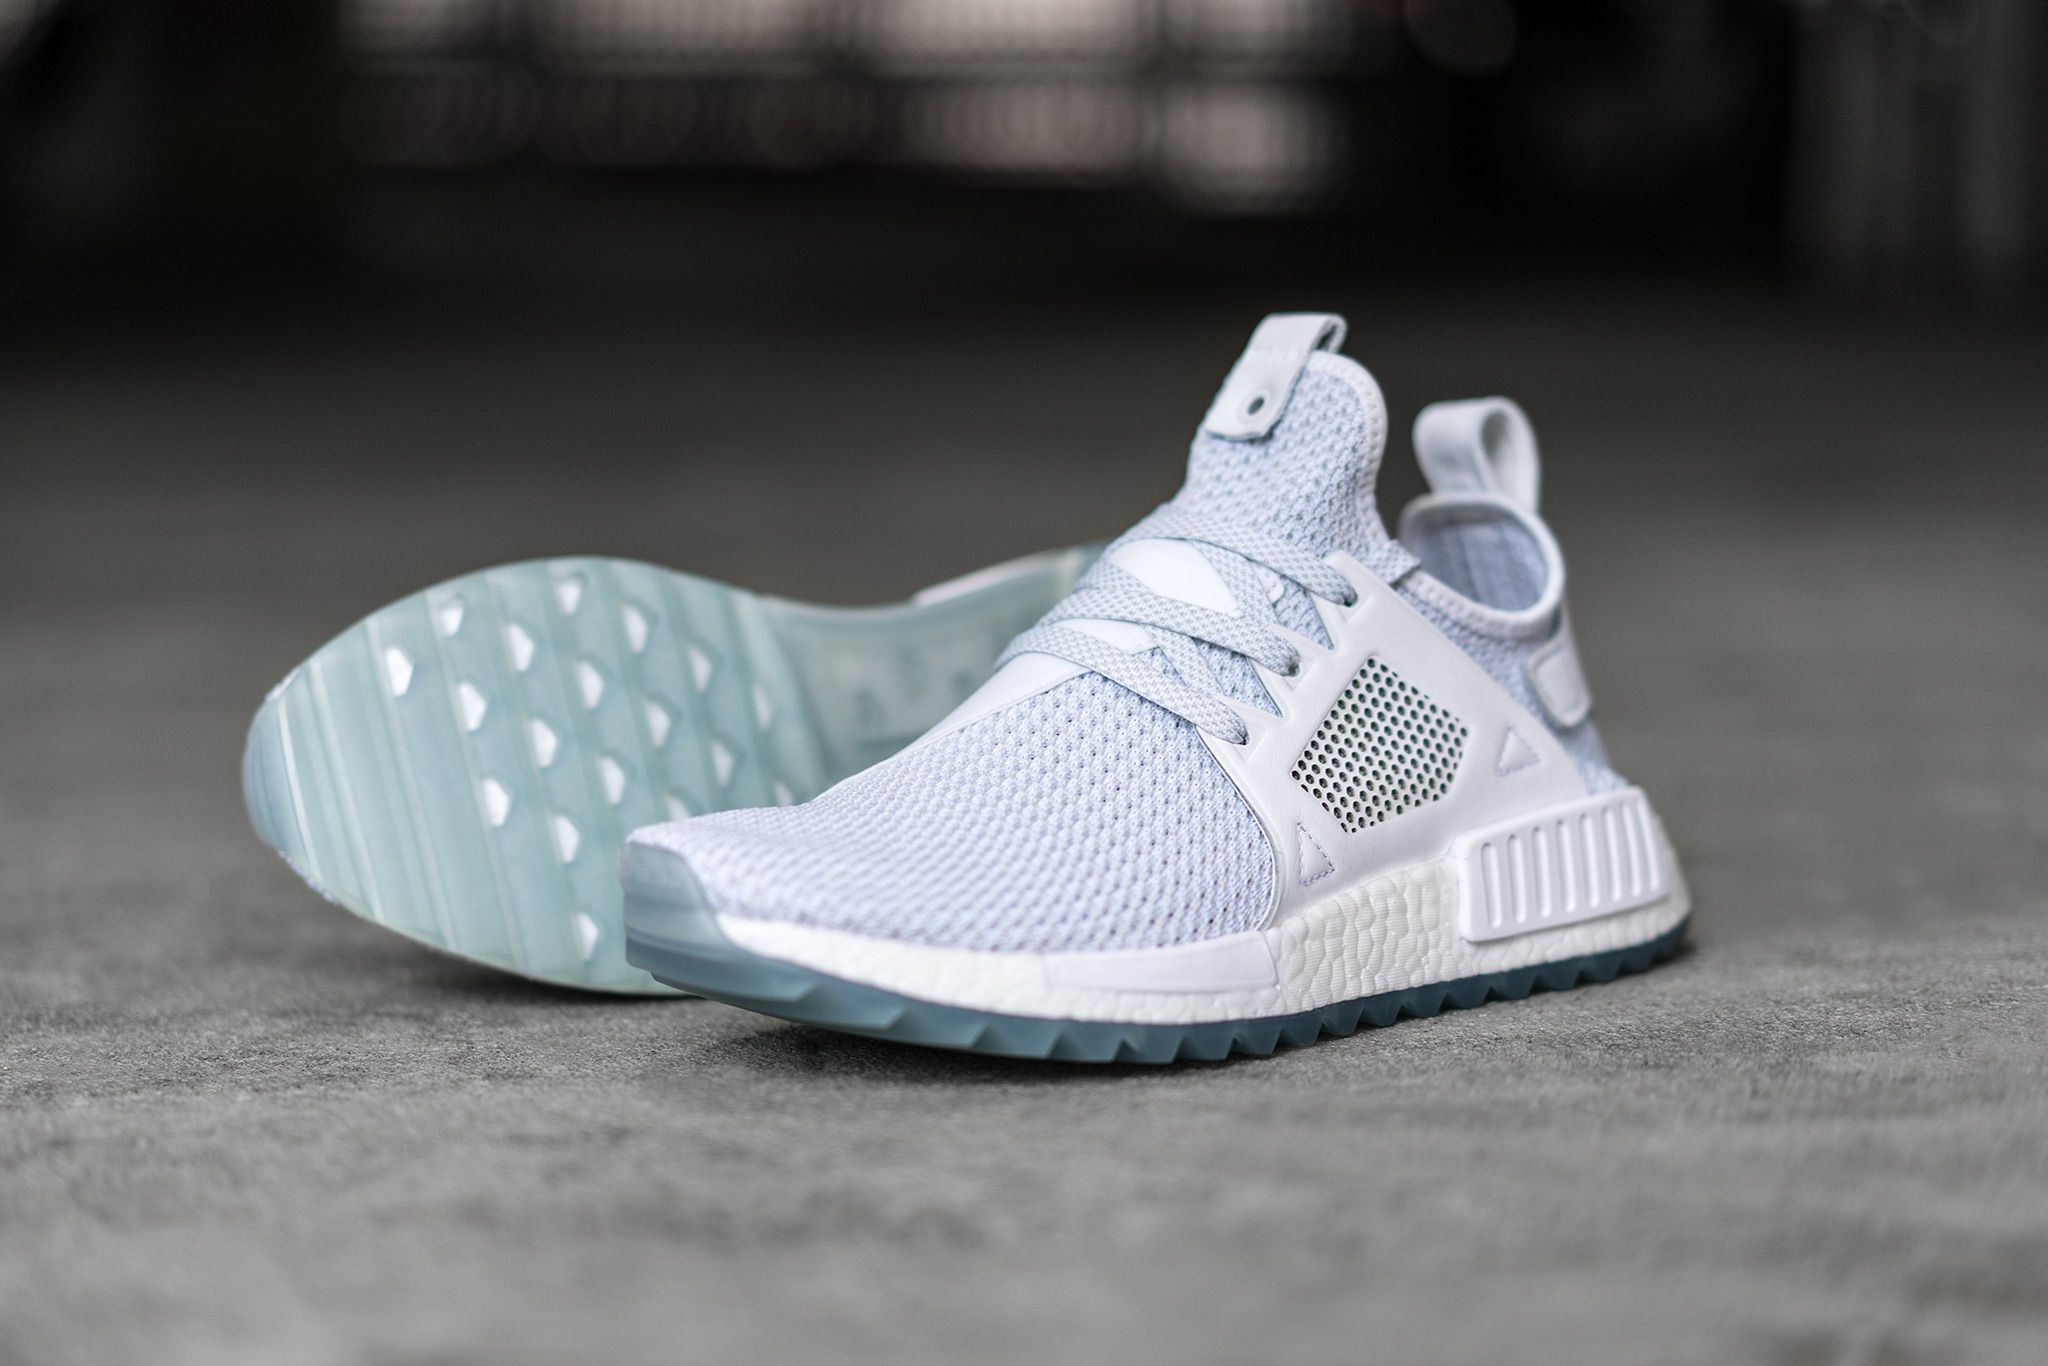 Adidas Originals NMD XR1 Primeknit Black Blue S32215 Size